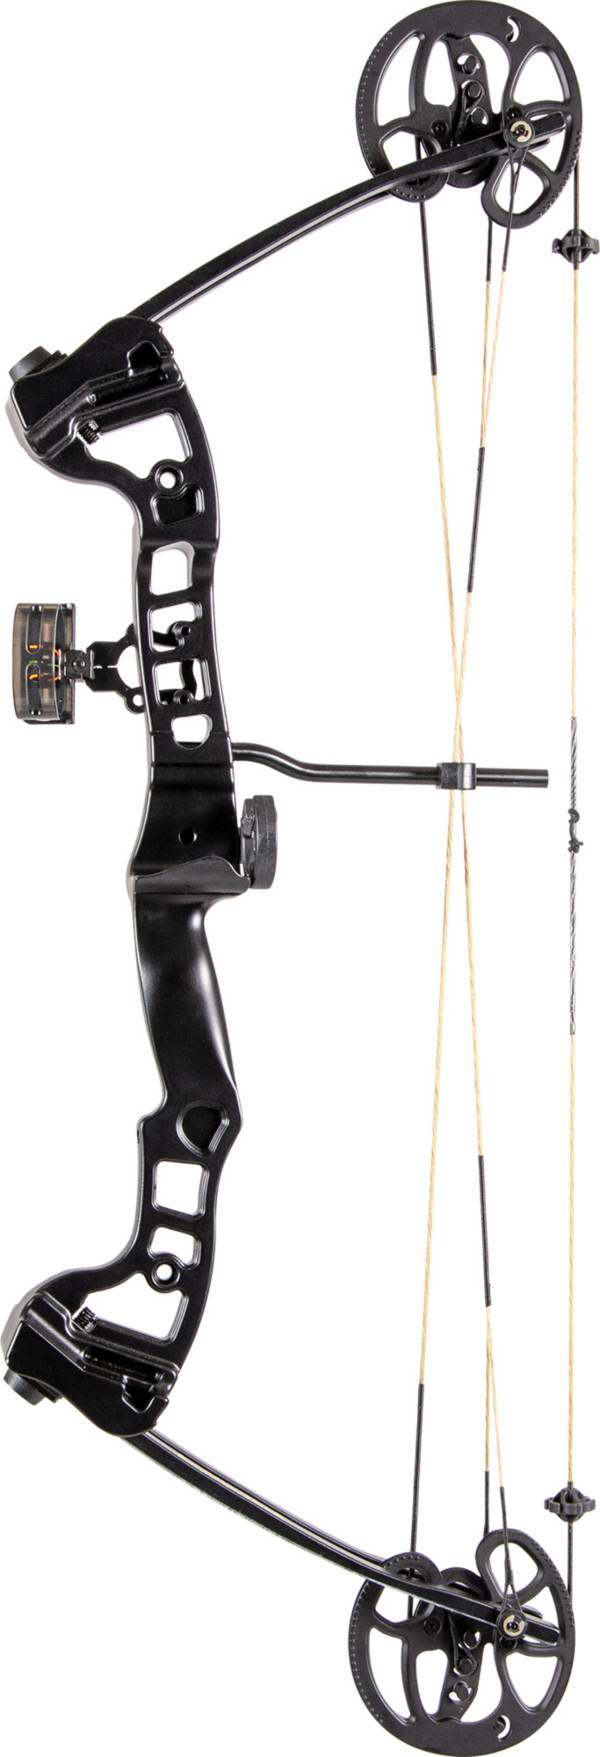 Barnett Vortex Lite Youth Compound Bow Package product image